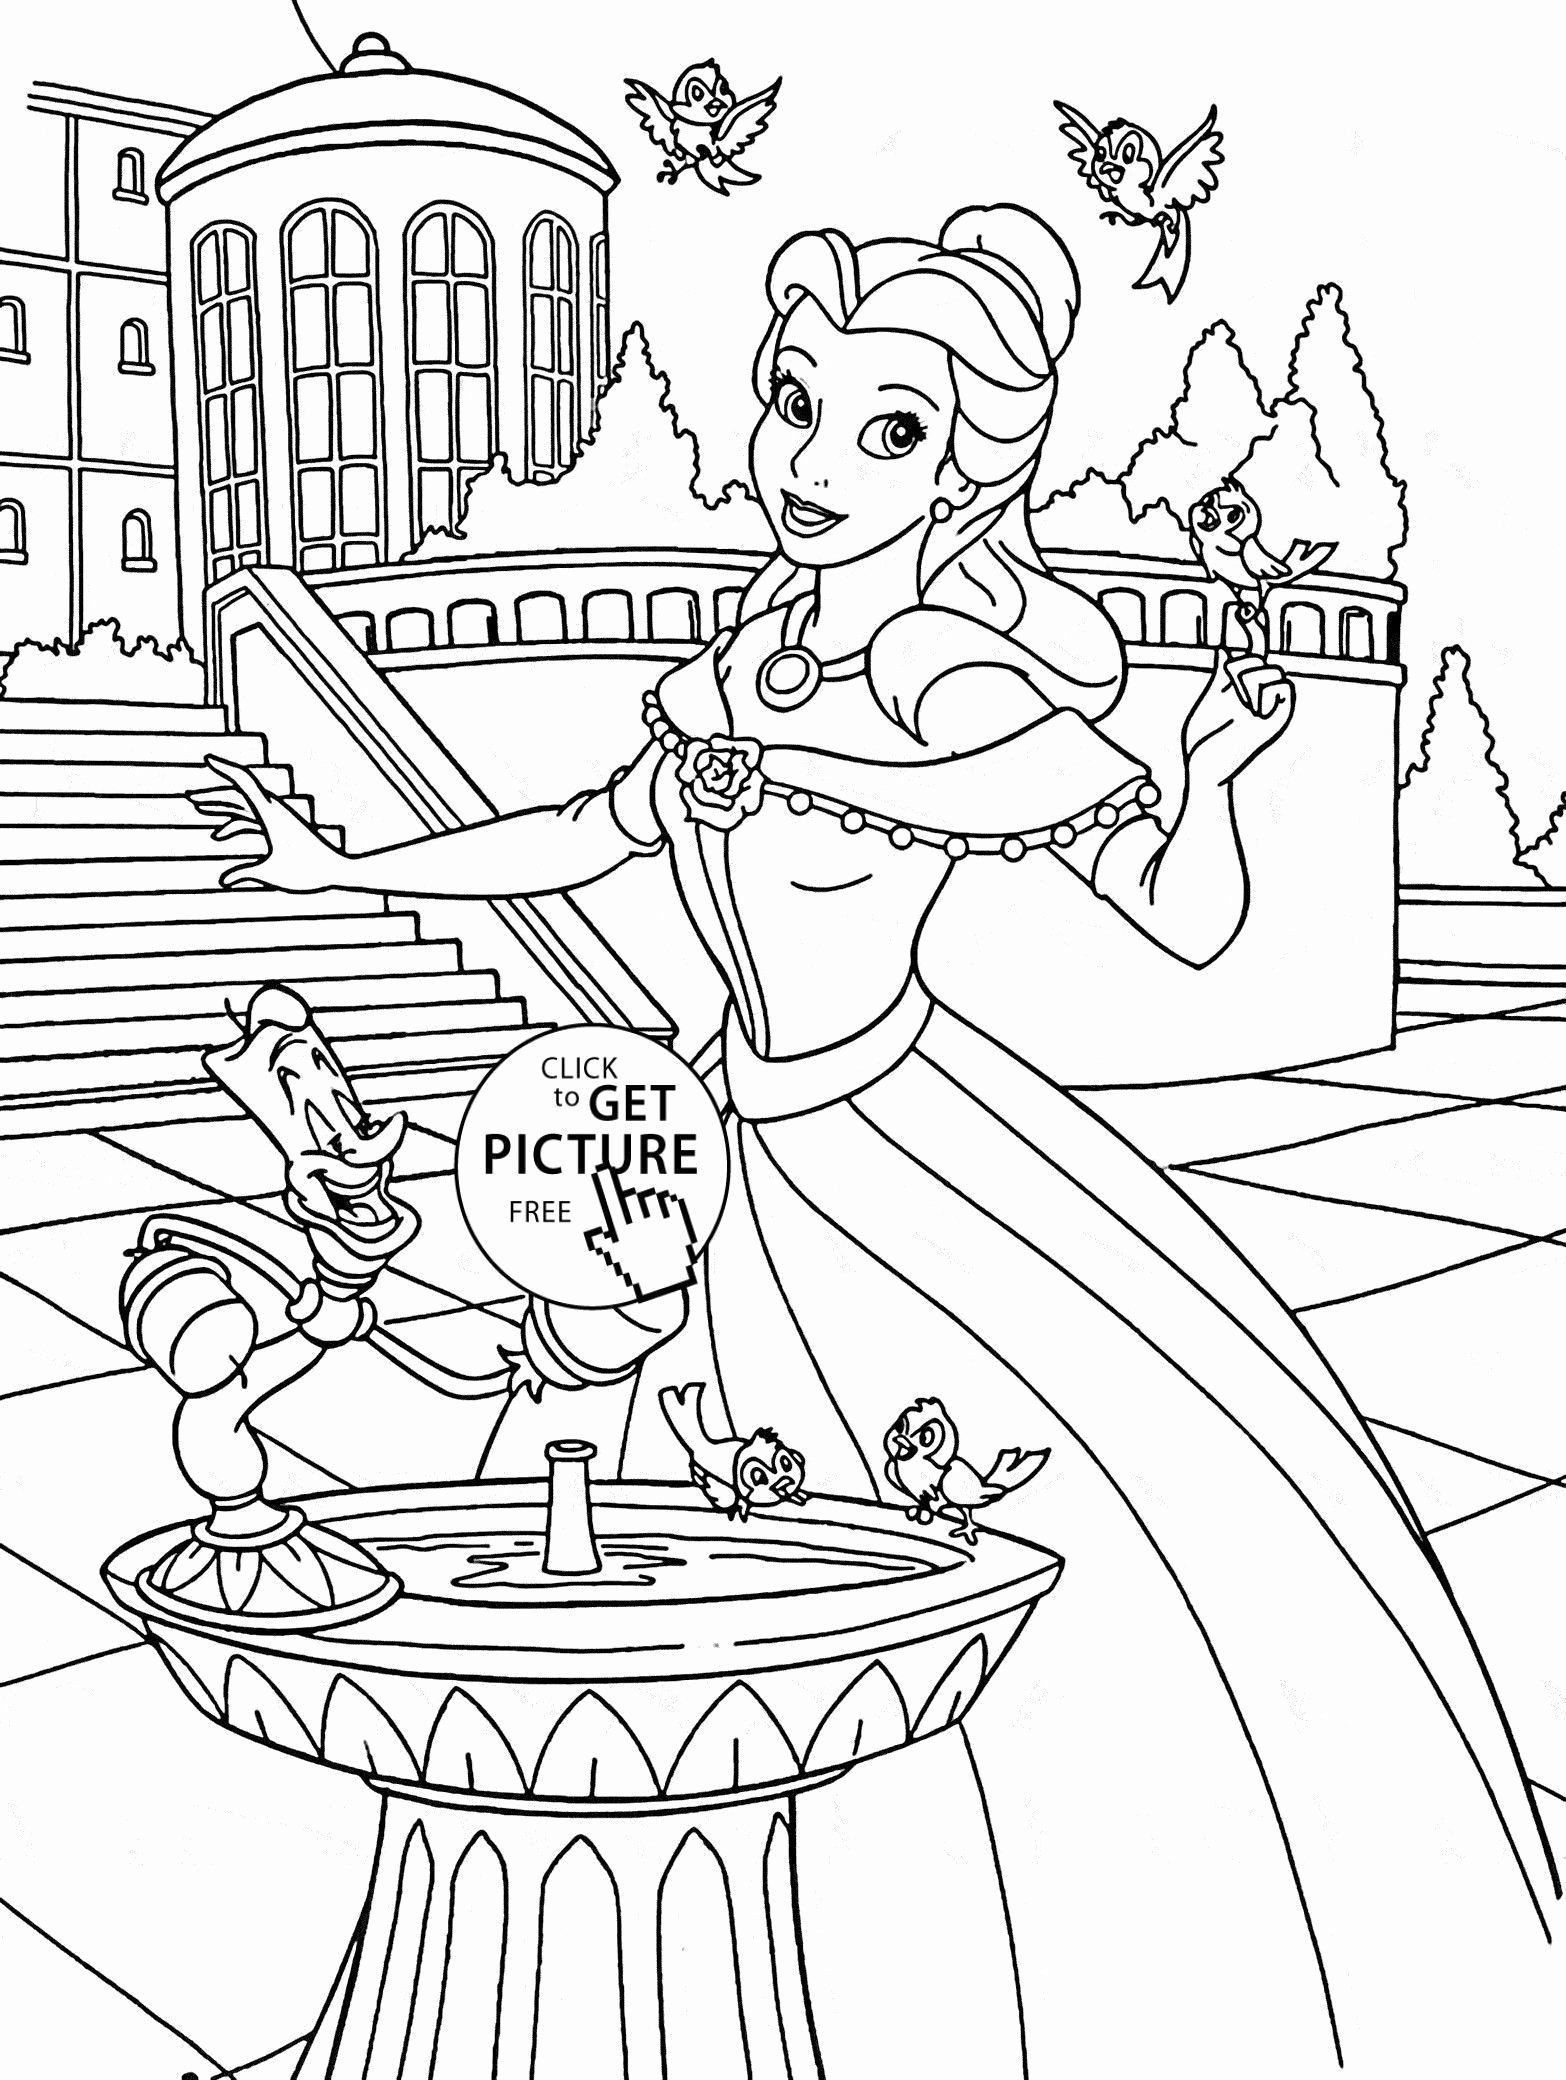 Printable Coloring Pages Disney Princess Coloring Pages Disney Princesses Printable In 2020 Disney Princess Coloring Pages Belle Coloring Pages Unicorn Coloring Pages